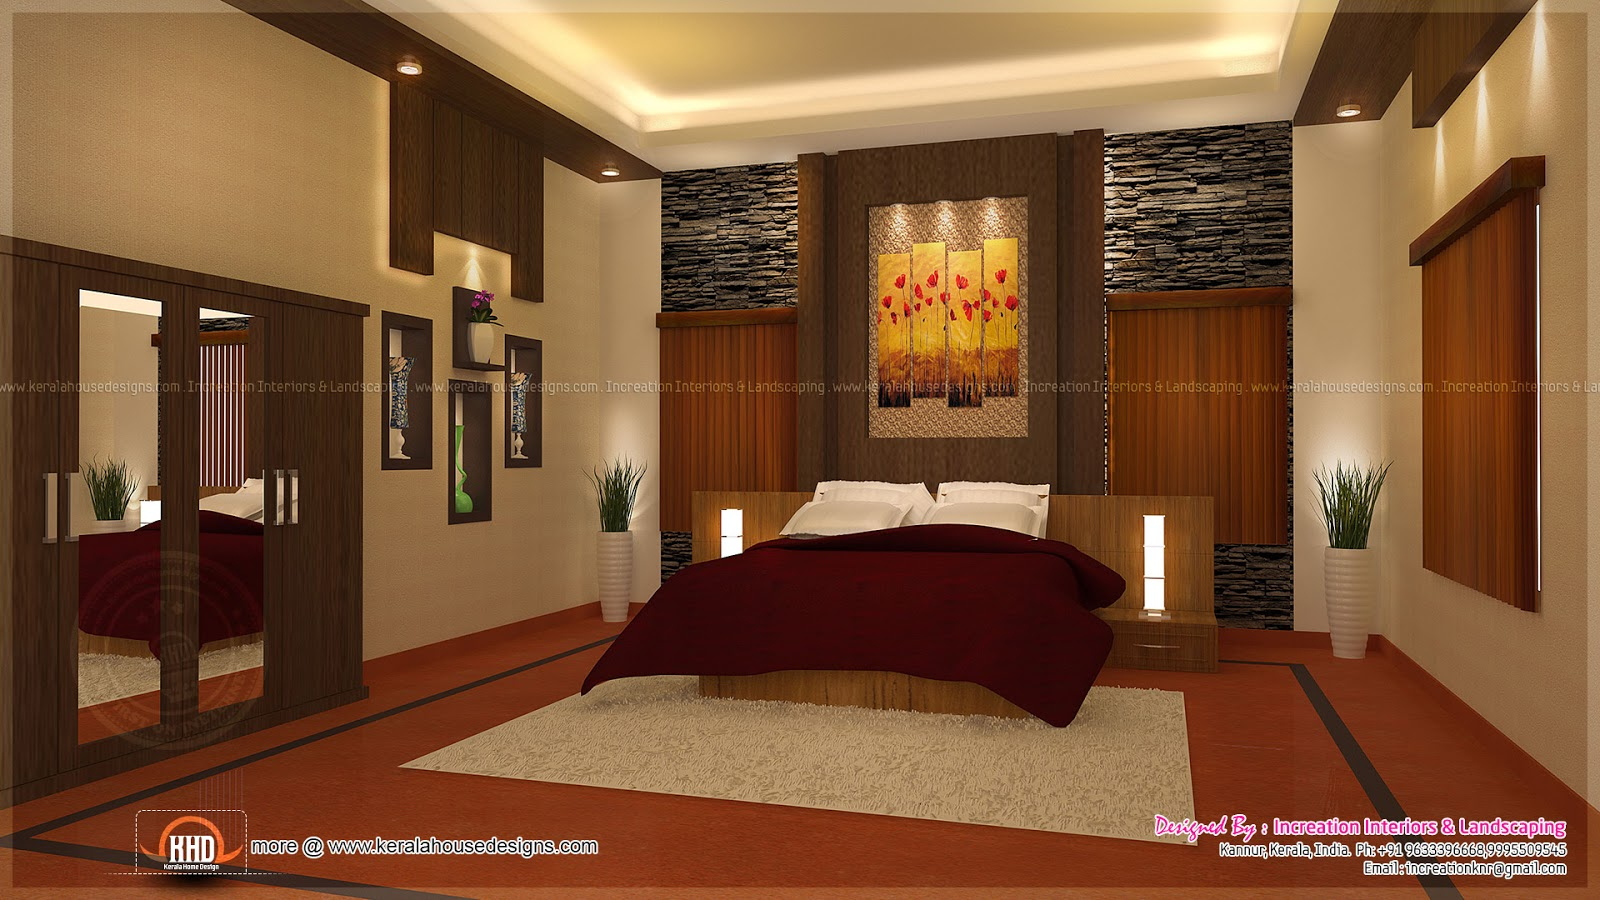 House interior ideas in 3d rendering home kerala plans for House interior ideas